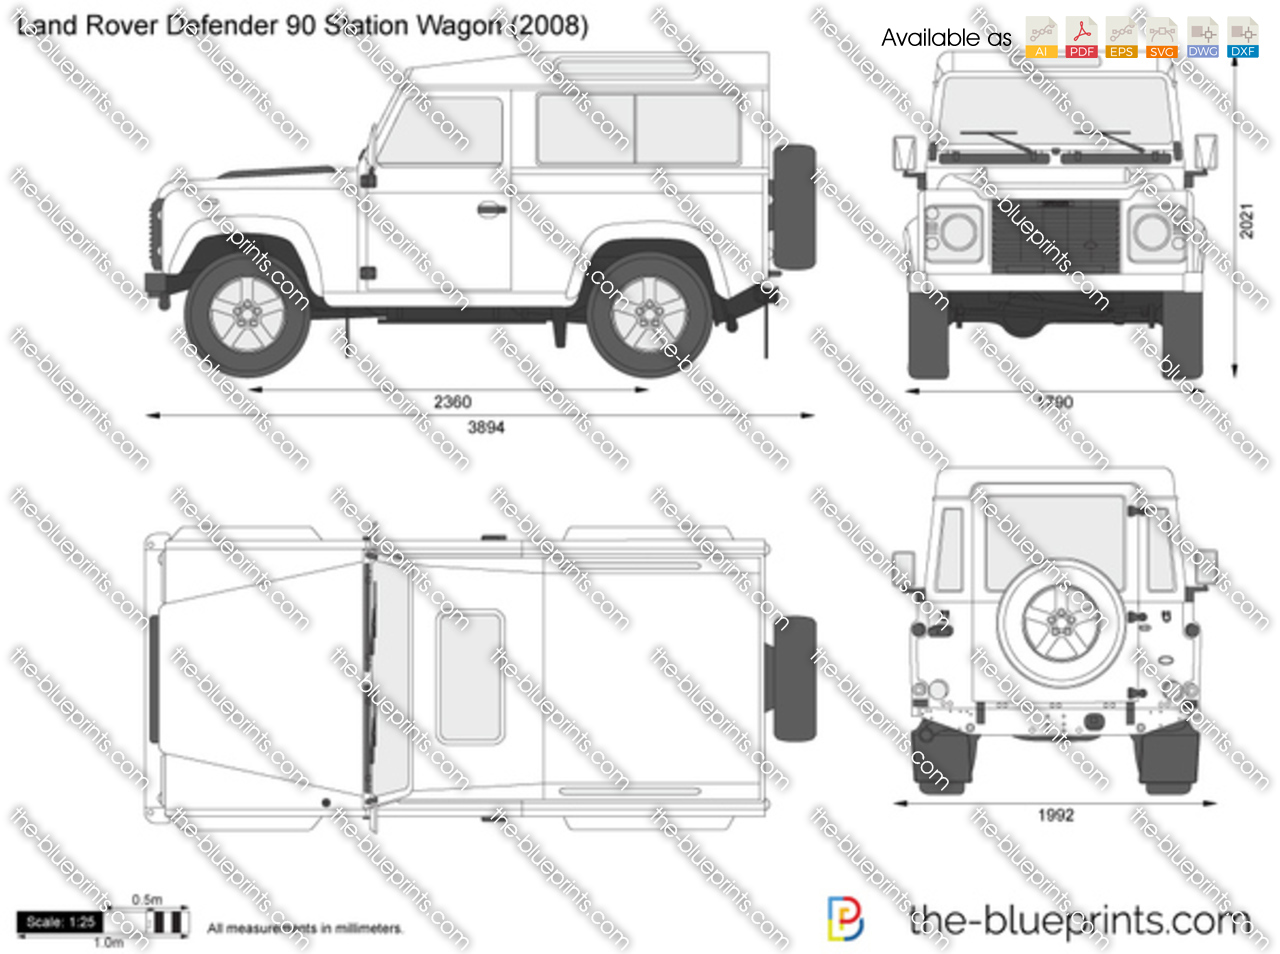 Land Rover Defender 90 Station Wagon 2000